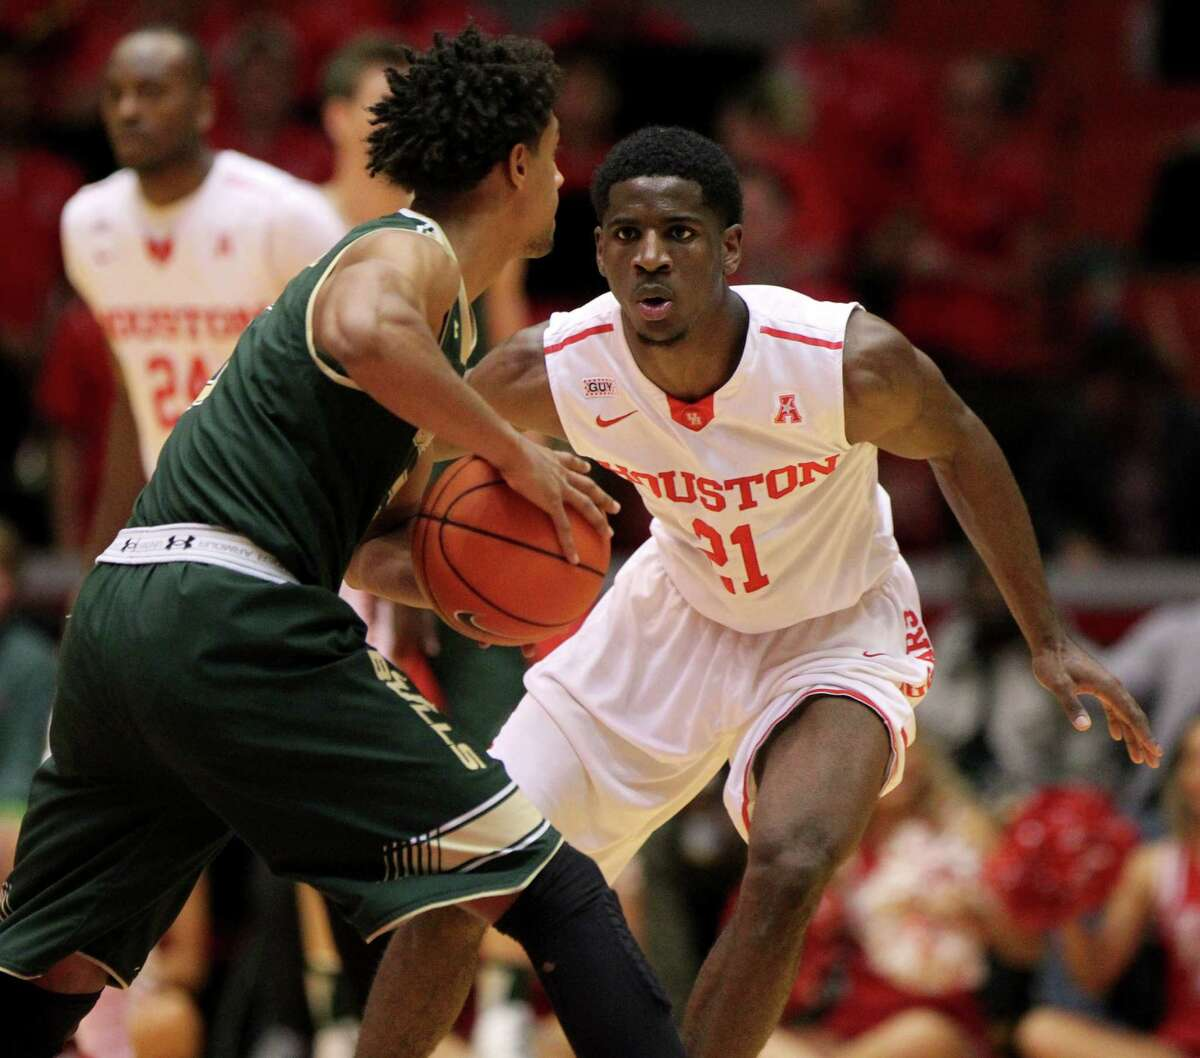 Houston Cougars guard Damyean Dotson (21) guards South Florida Bulls guard Nehemias Morillo (5) during the second half at Hofheinz Pavilion on the campus of the University of Houston Saturday, Jan. 23, 2016, in Houston, Texas. Houston lost 62-71.